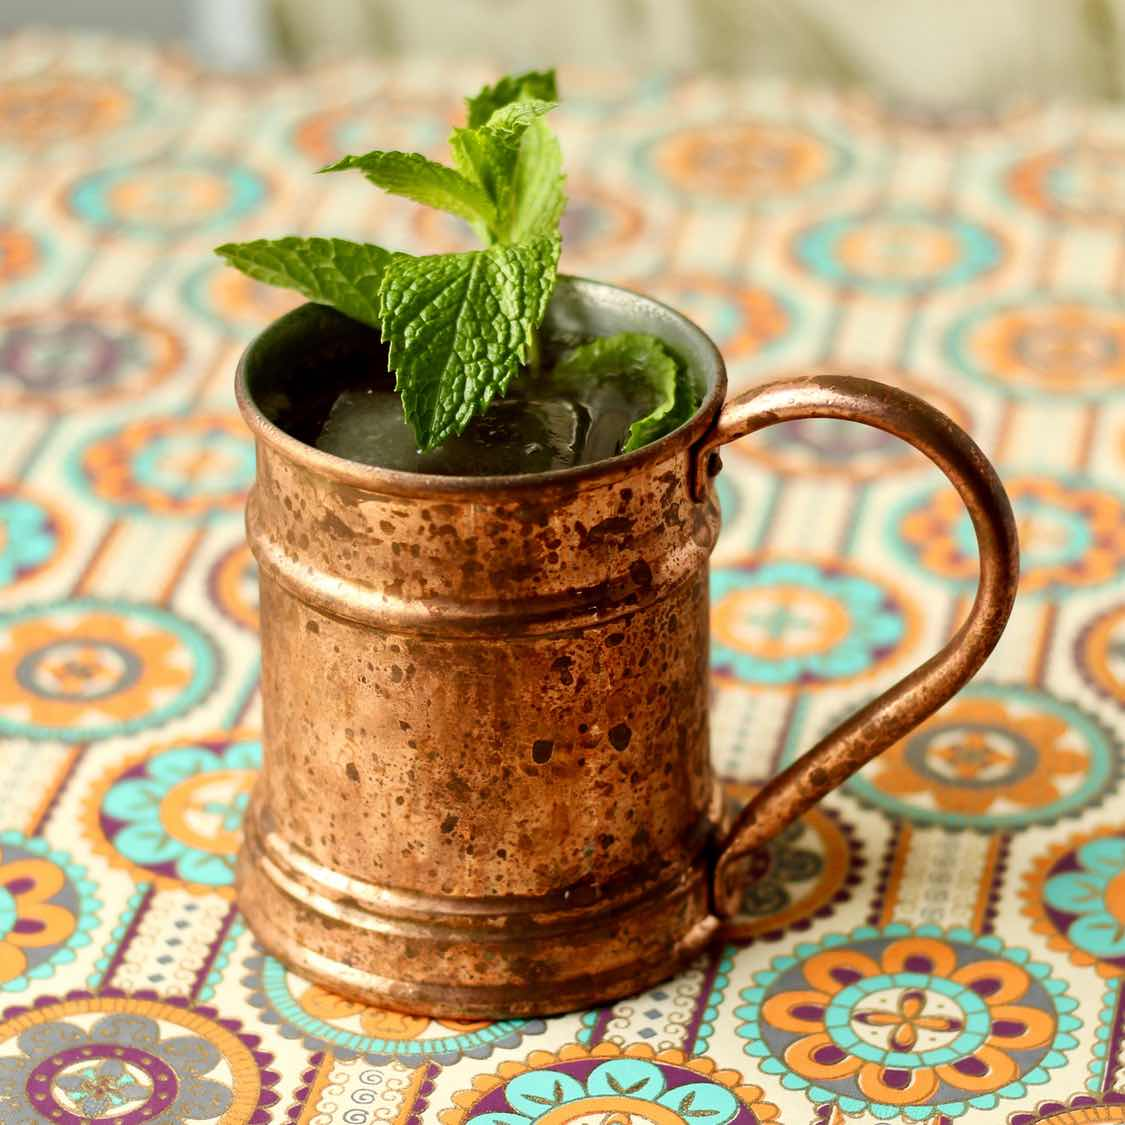 Mayan Mule - A Tequila Variation of the Moscow mule